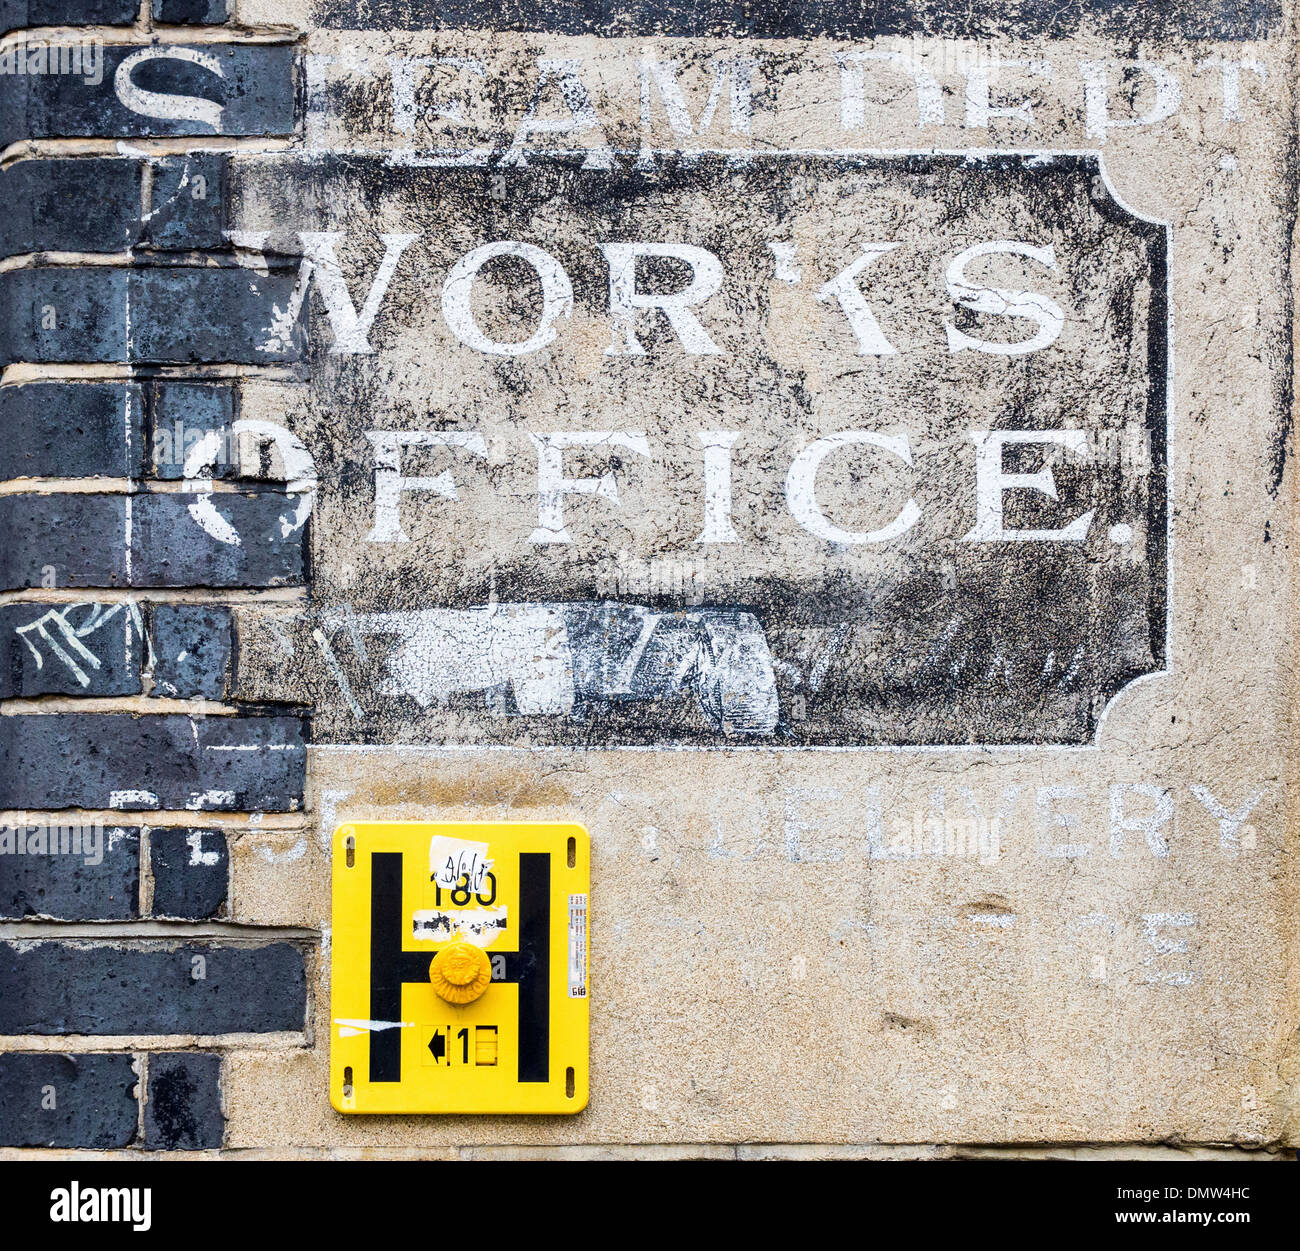 'Steam Dept. Works Office' - Old sign on wall of brick building in Fashion Street, London, UK - Stock Image